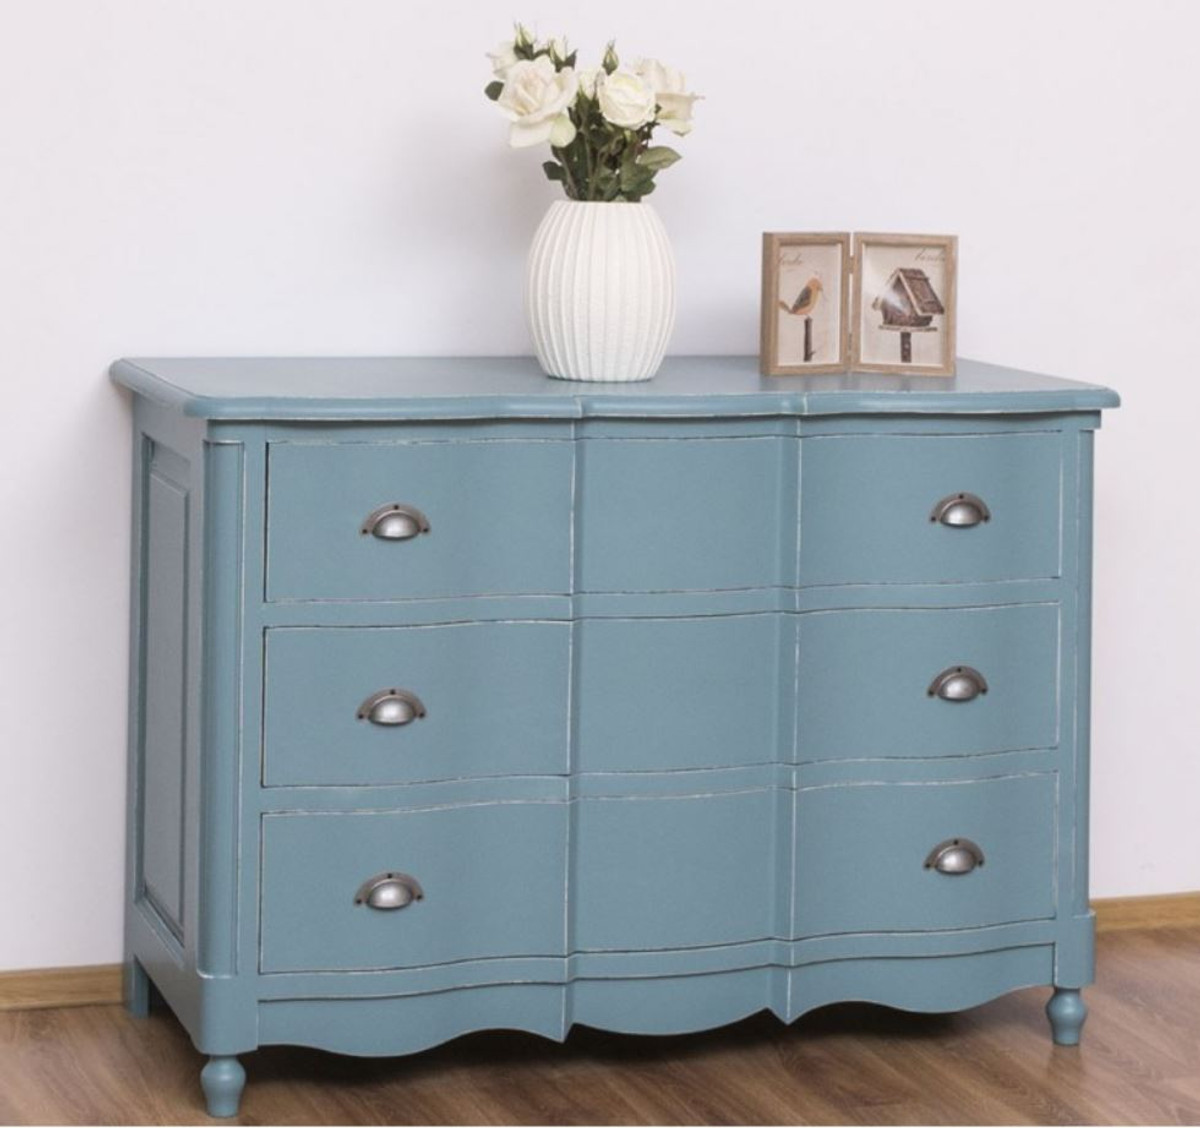 Casa Padrino country style chest of drawers antique light blue 20 x 20 x  H. 20 cm   Solid wood cabinet with 20 drawers   Country style furniture